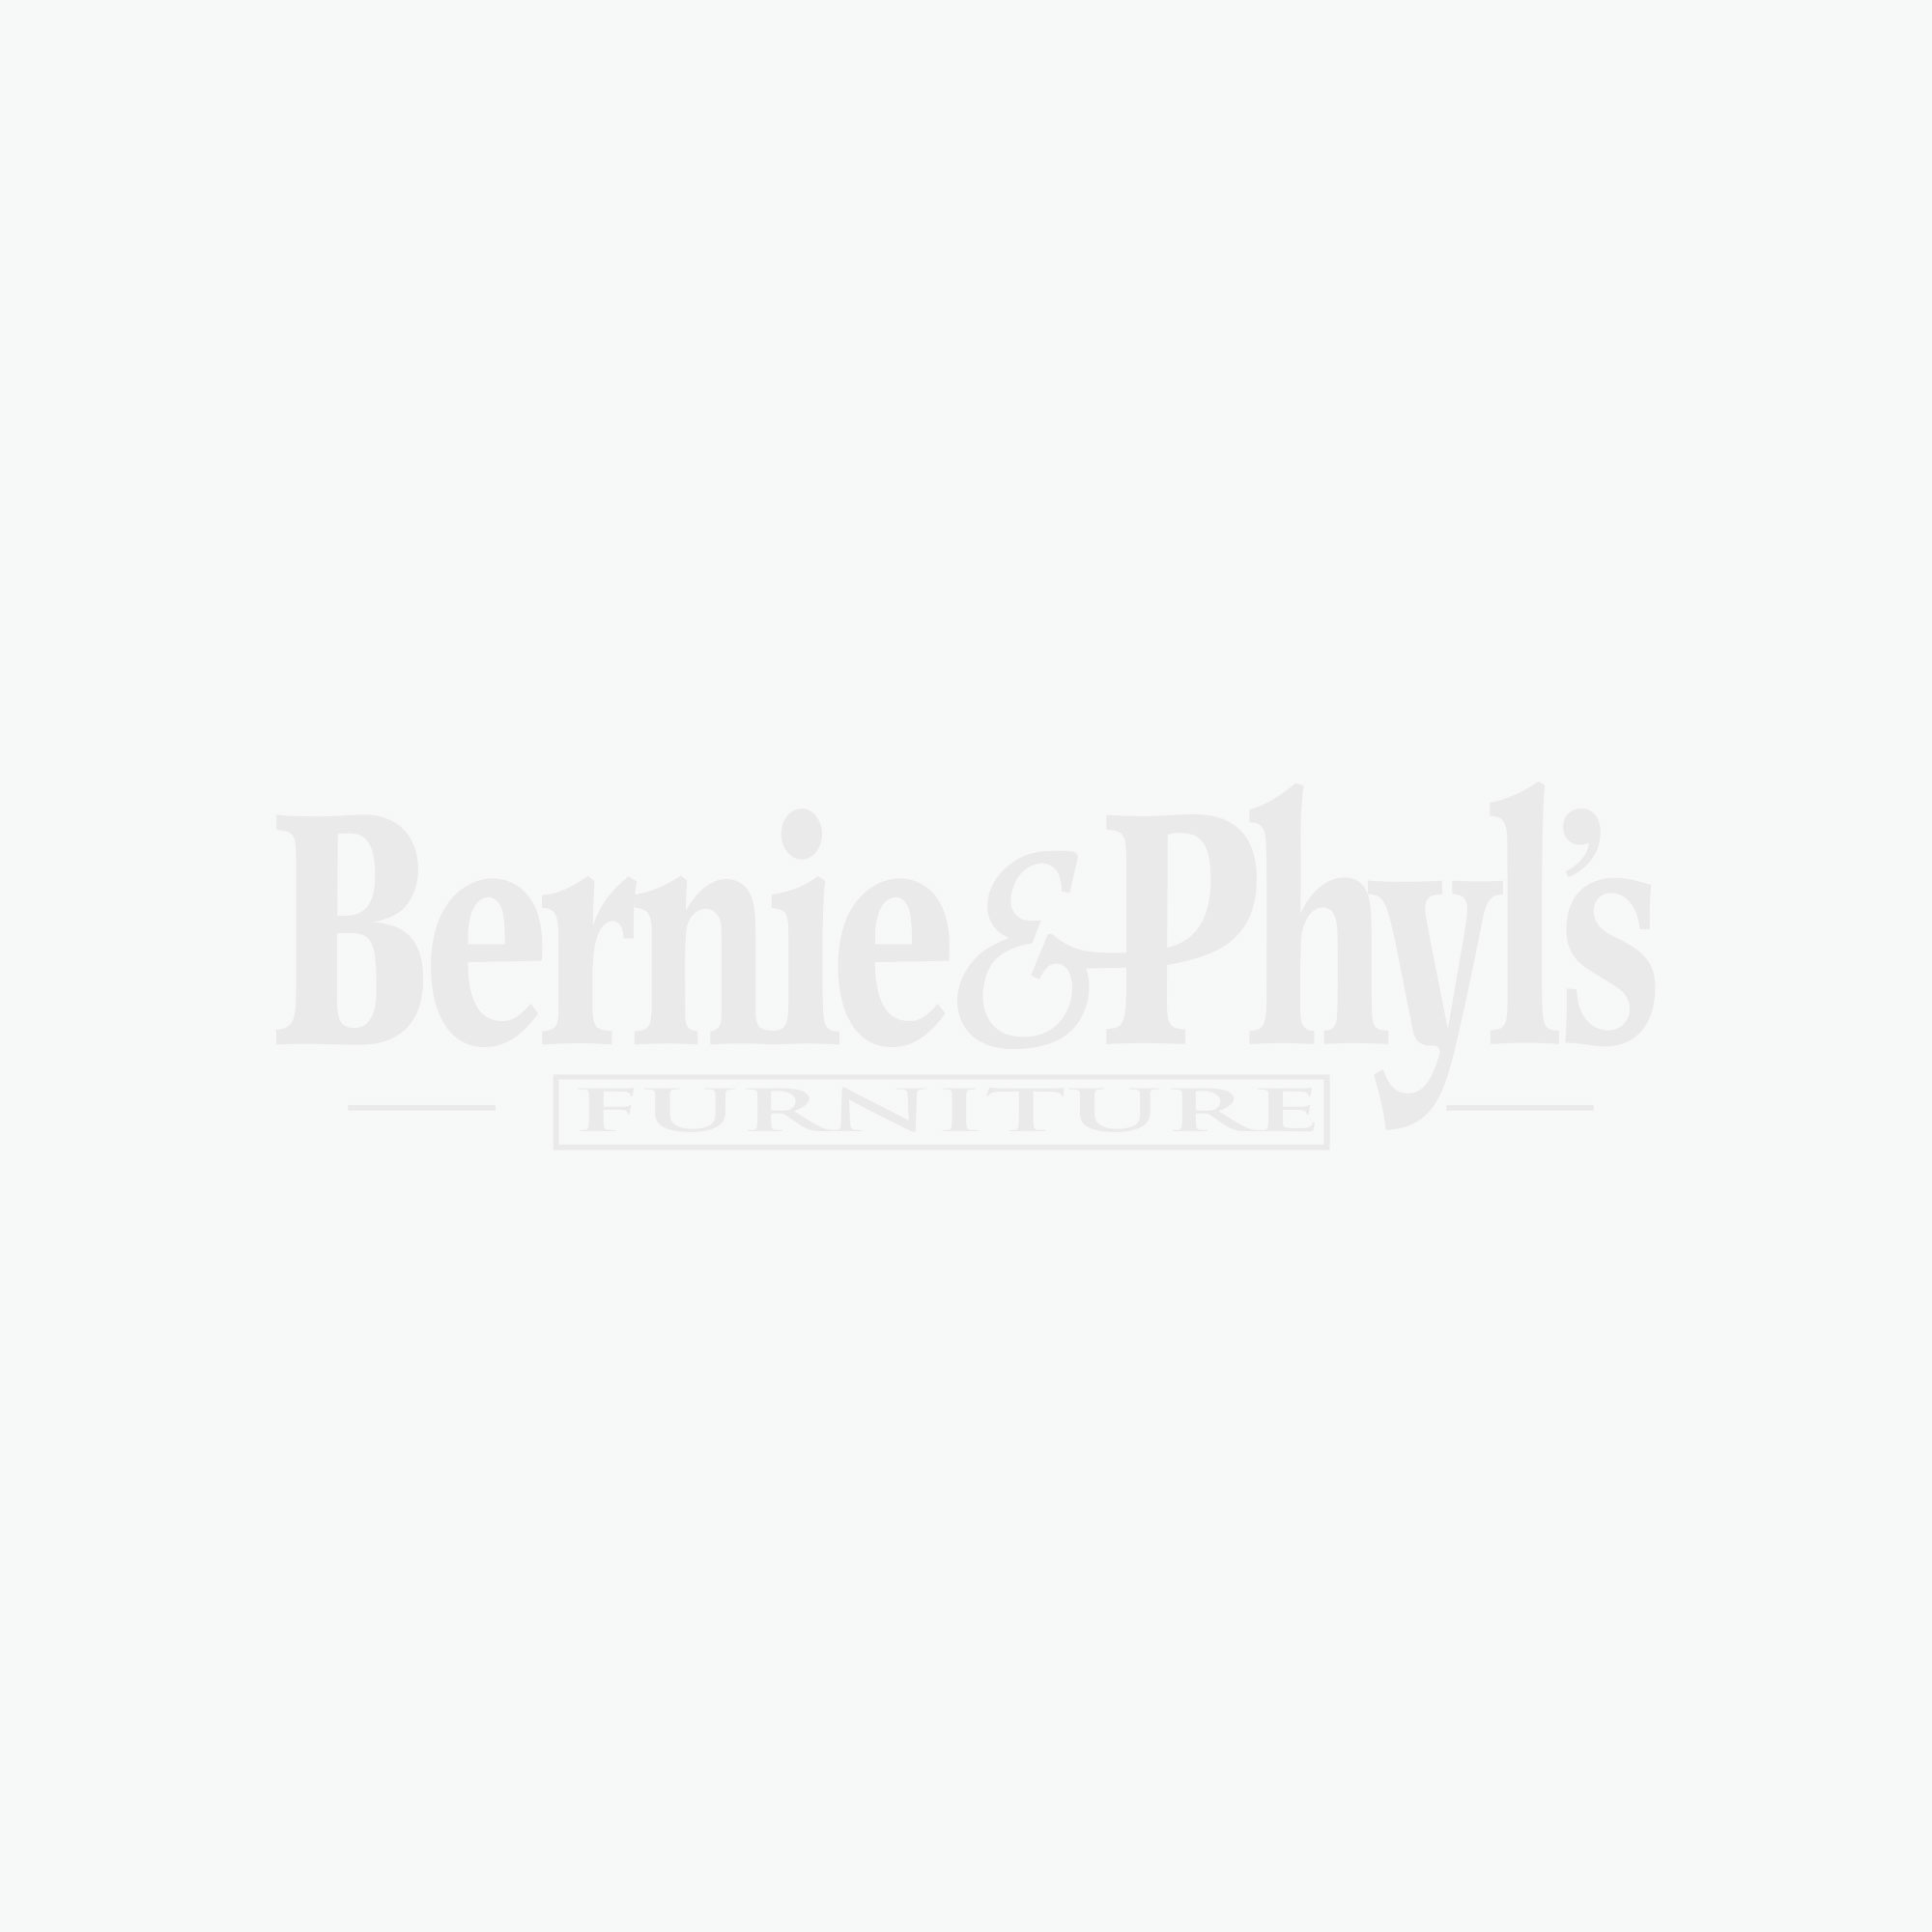 Holly U0026 Martin Zephs Bar Cart   (Set Of 1)   HZ8810   By Southern  Enterprises   Bernie U0026 Phylu0027s Furniture   By Southern Enterprises